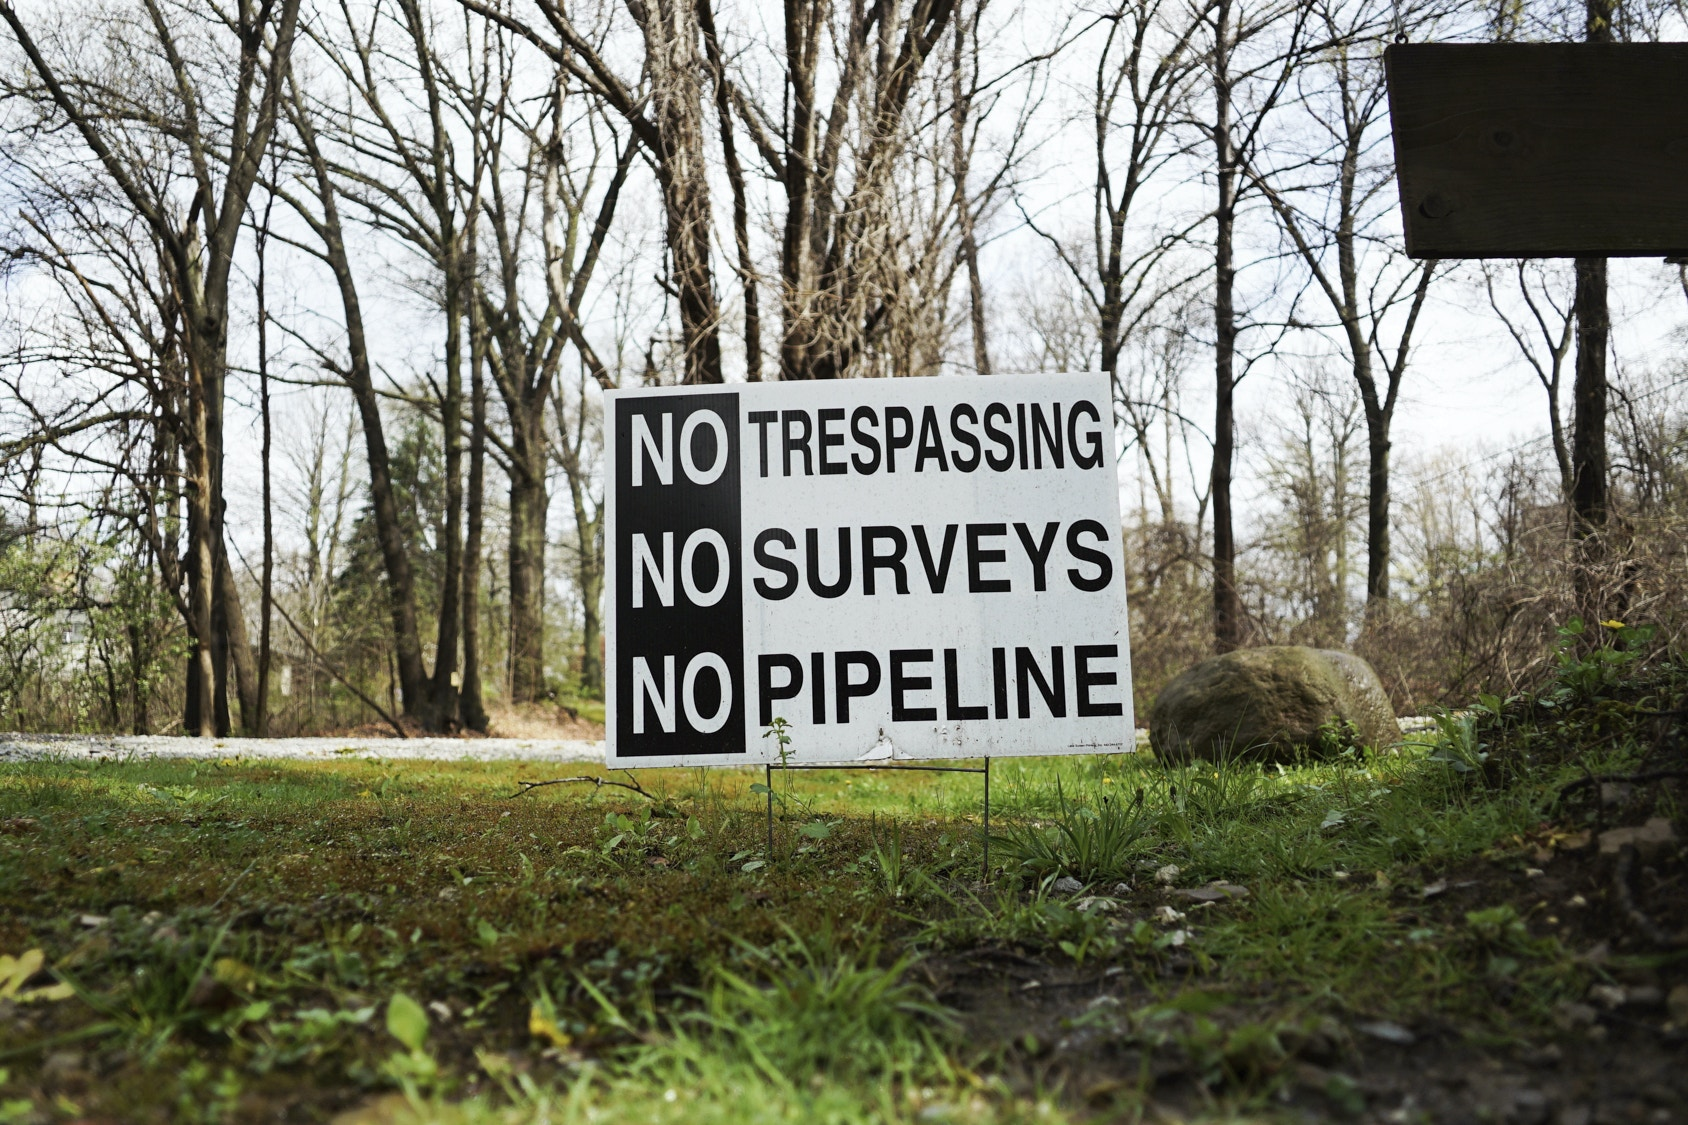 In this April 20, 2017 photo, a sign opposing a proposed pipeline sits in the front yard of a house in Green, Ohio. The town has hired a law firm to stop the pipeline from being built through the community. (AP Photo/Dake Kang)